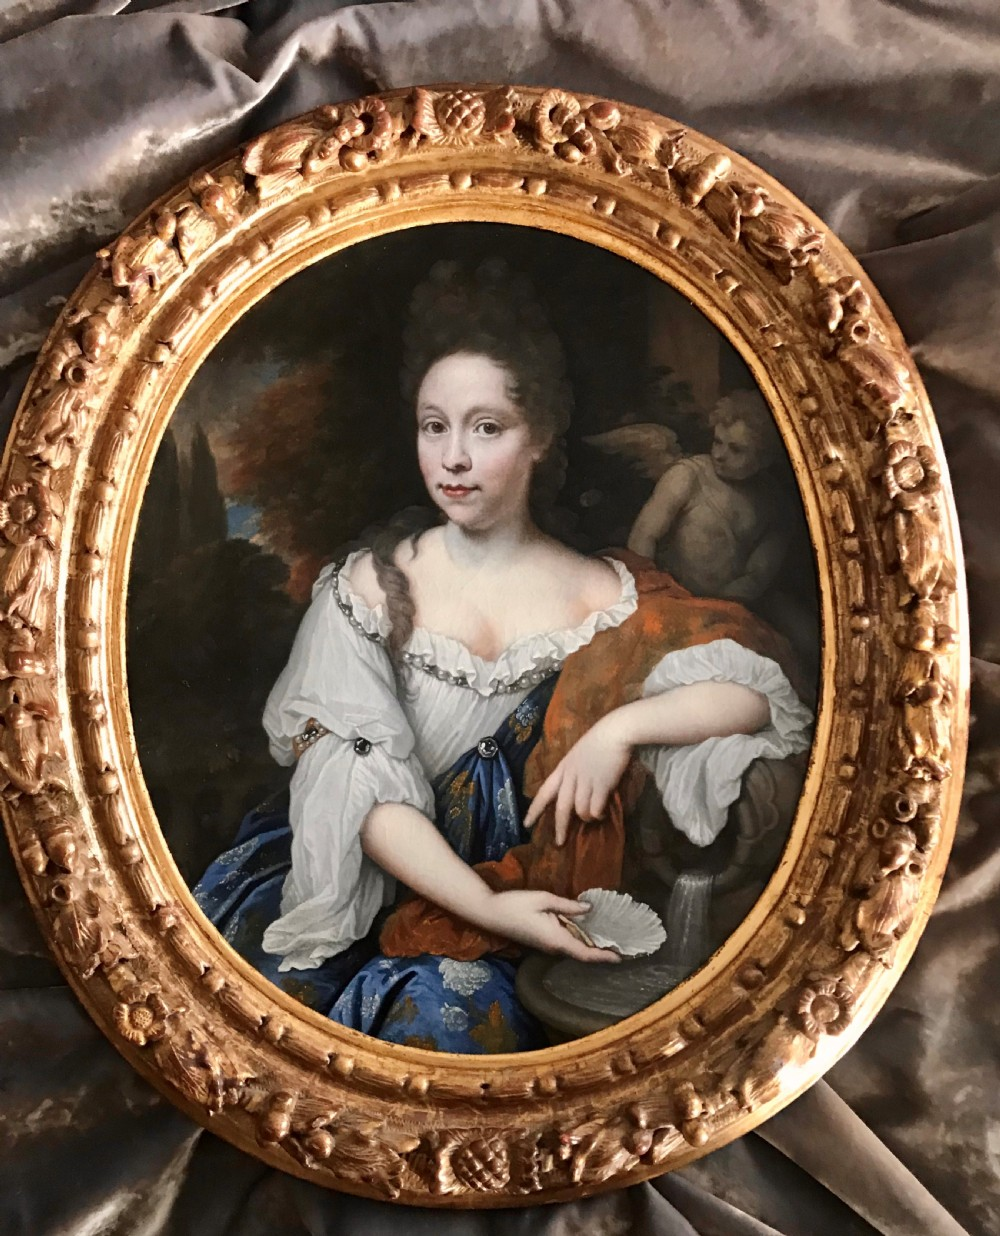 portrait of catharina margaretha beck c1695 attributed to johannes van haensbergen